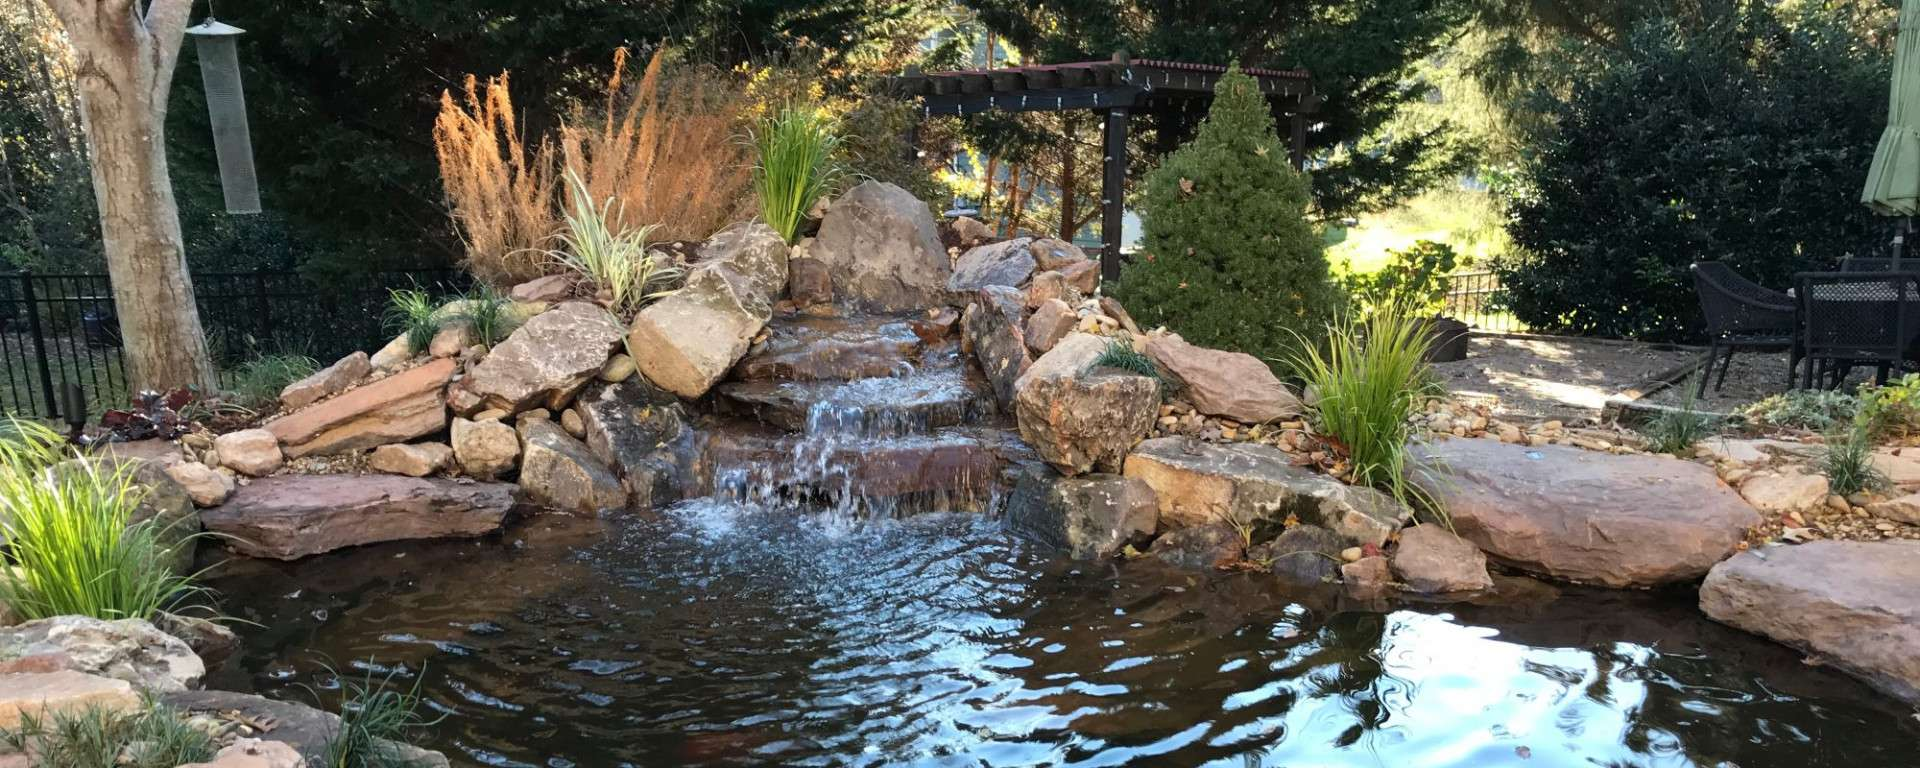 rocky waterfall feature with natural pond